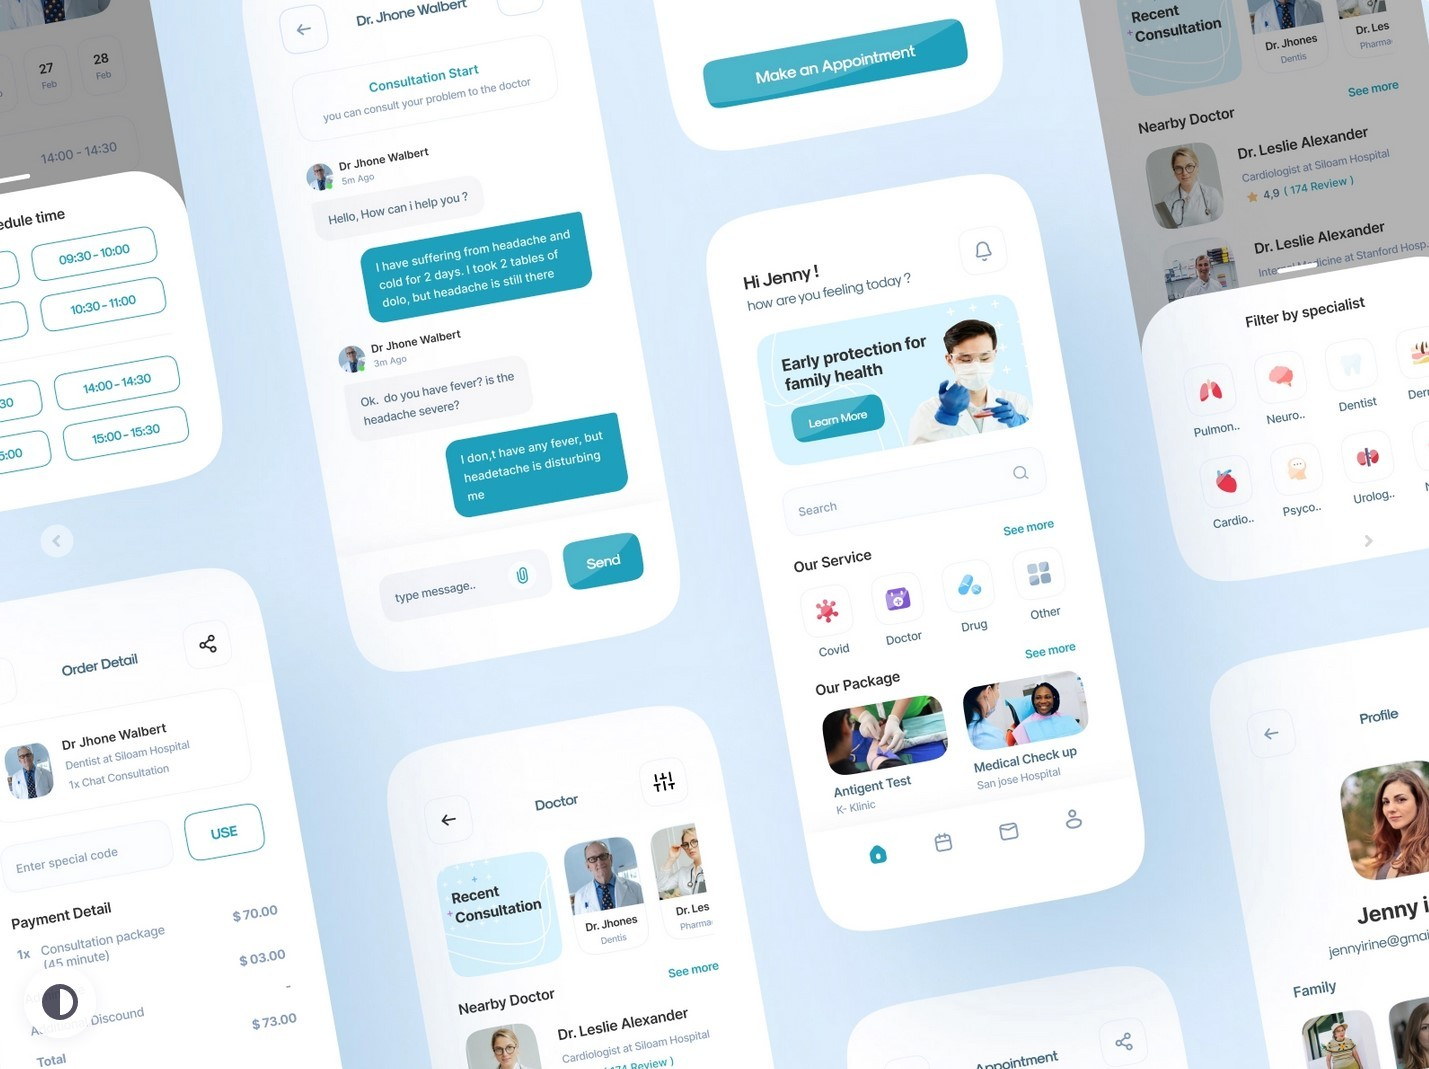 Clean and medical looking design system